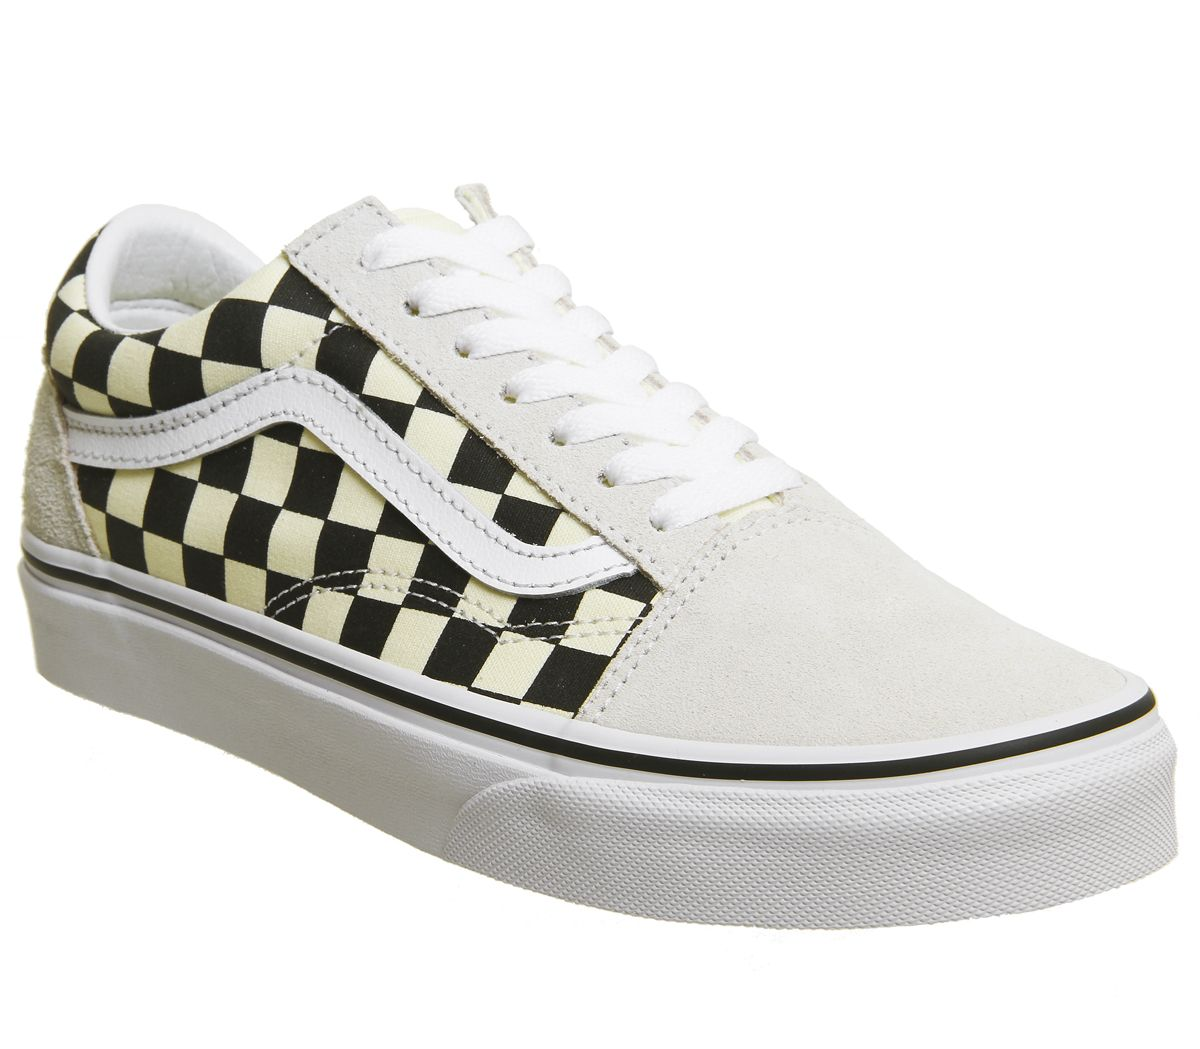 4345fb4ad7 Vans Old Skool Trainers Black White Checkerboard - Unisex Sports